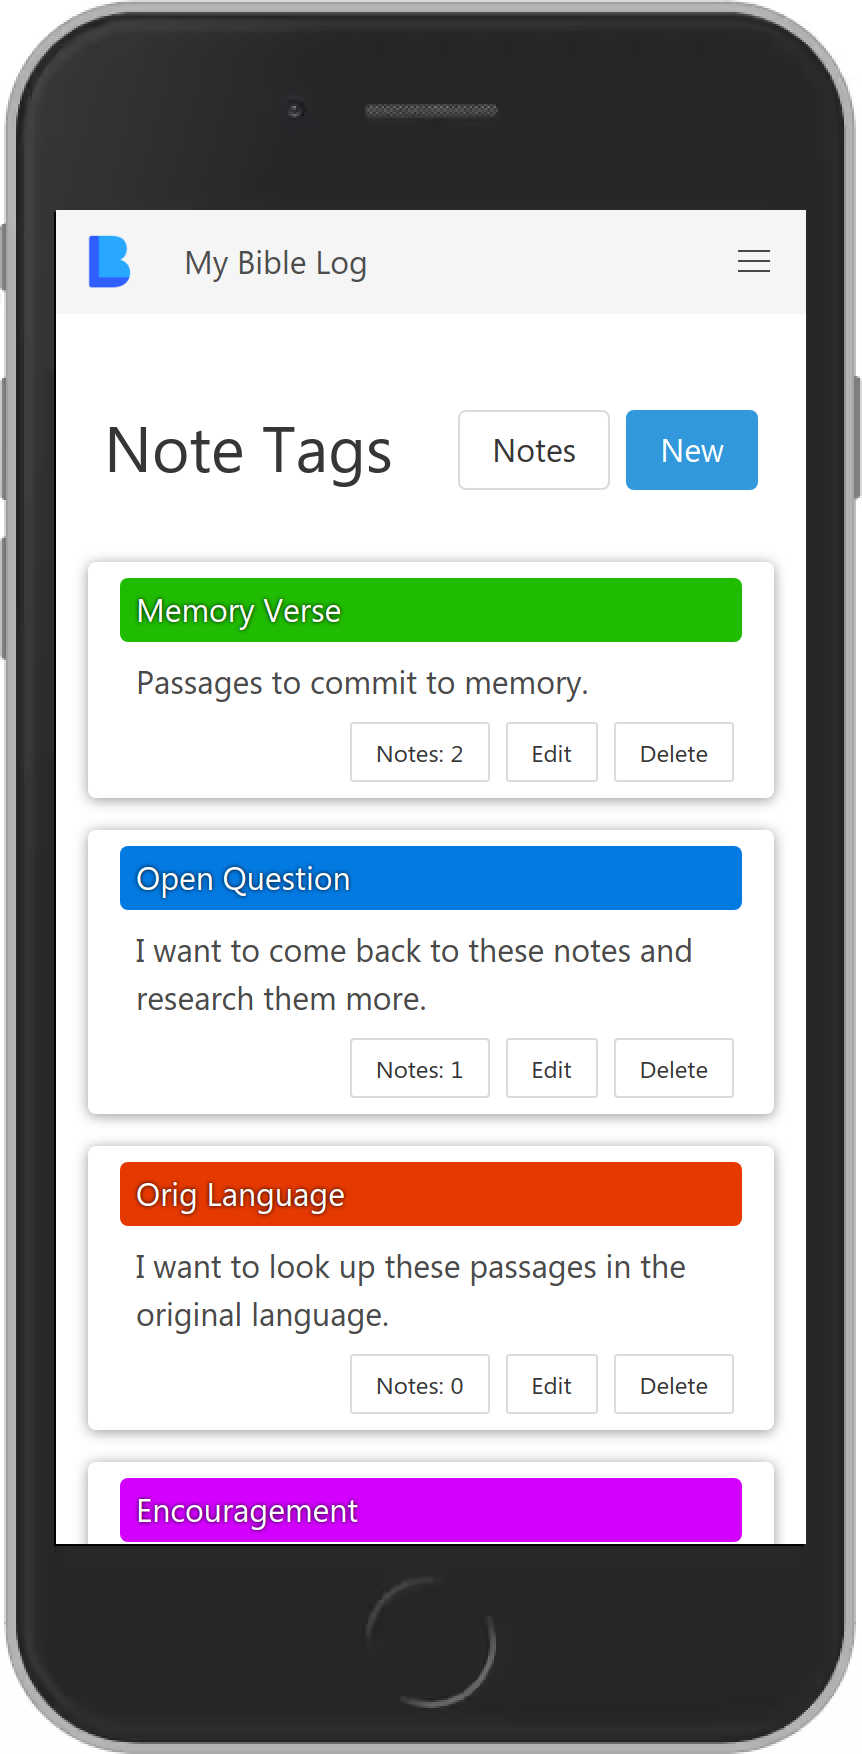 My Bible Log showing custom note tags